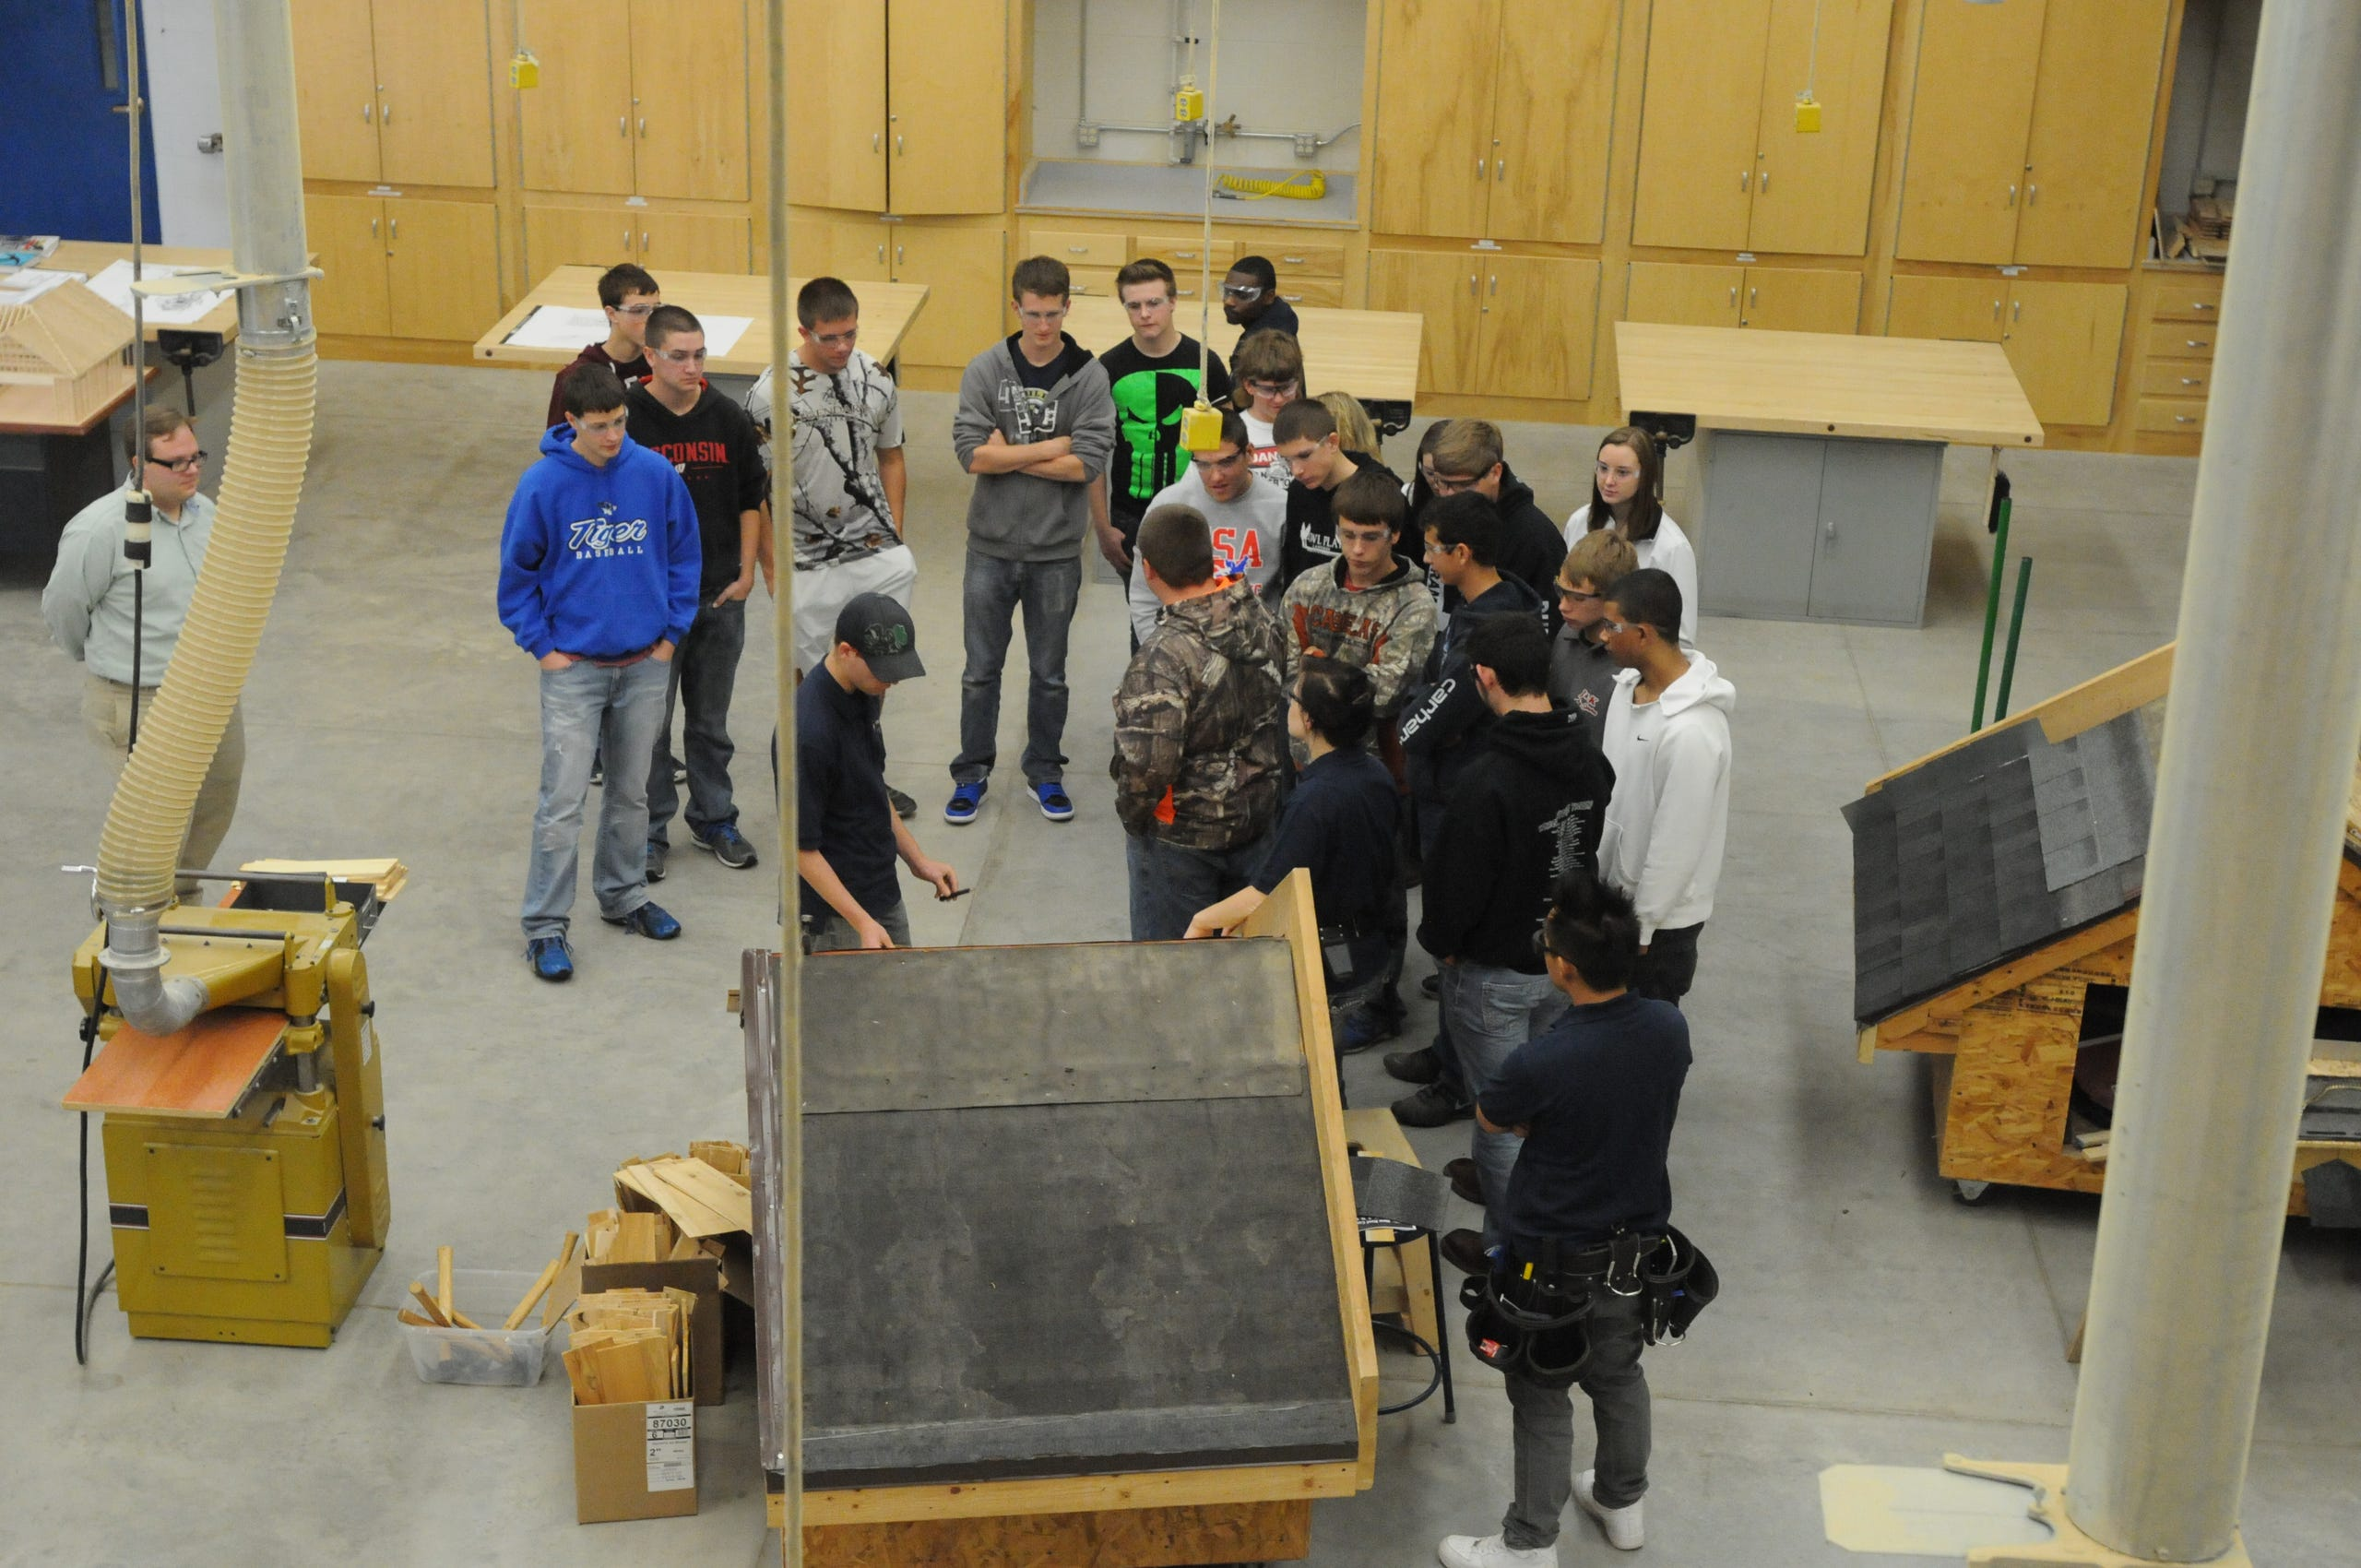 High School Students Learn About Woodworking Careers